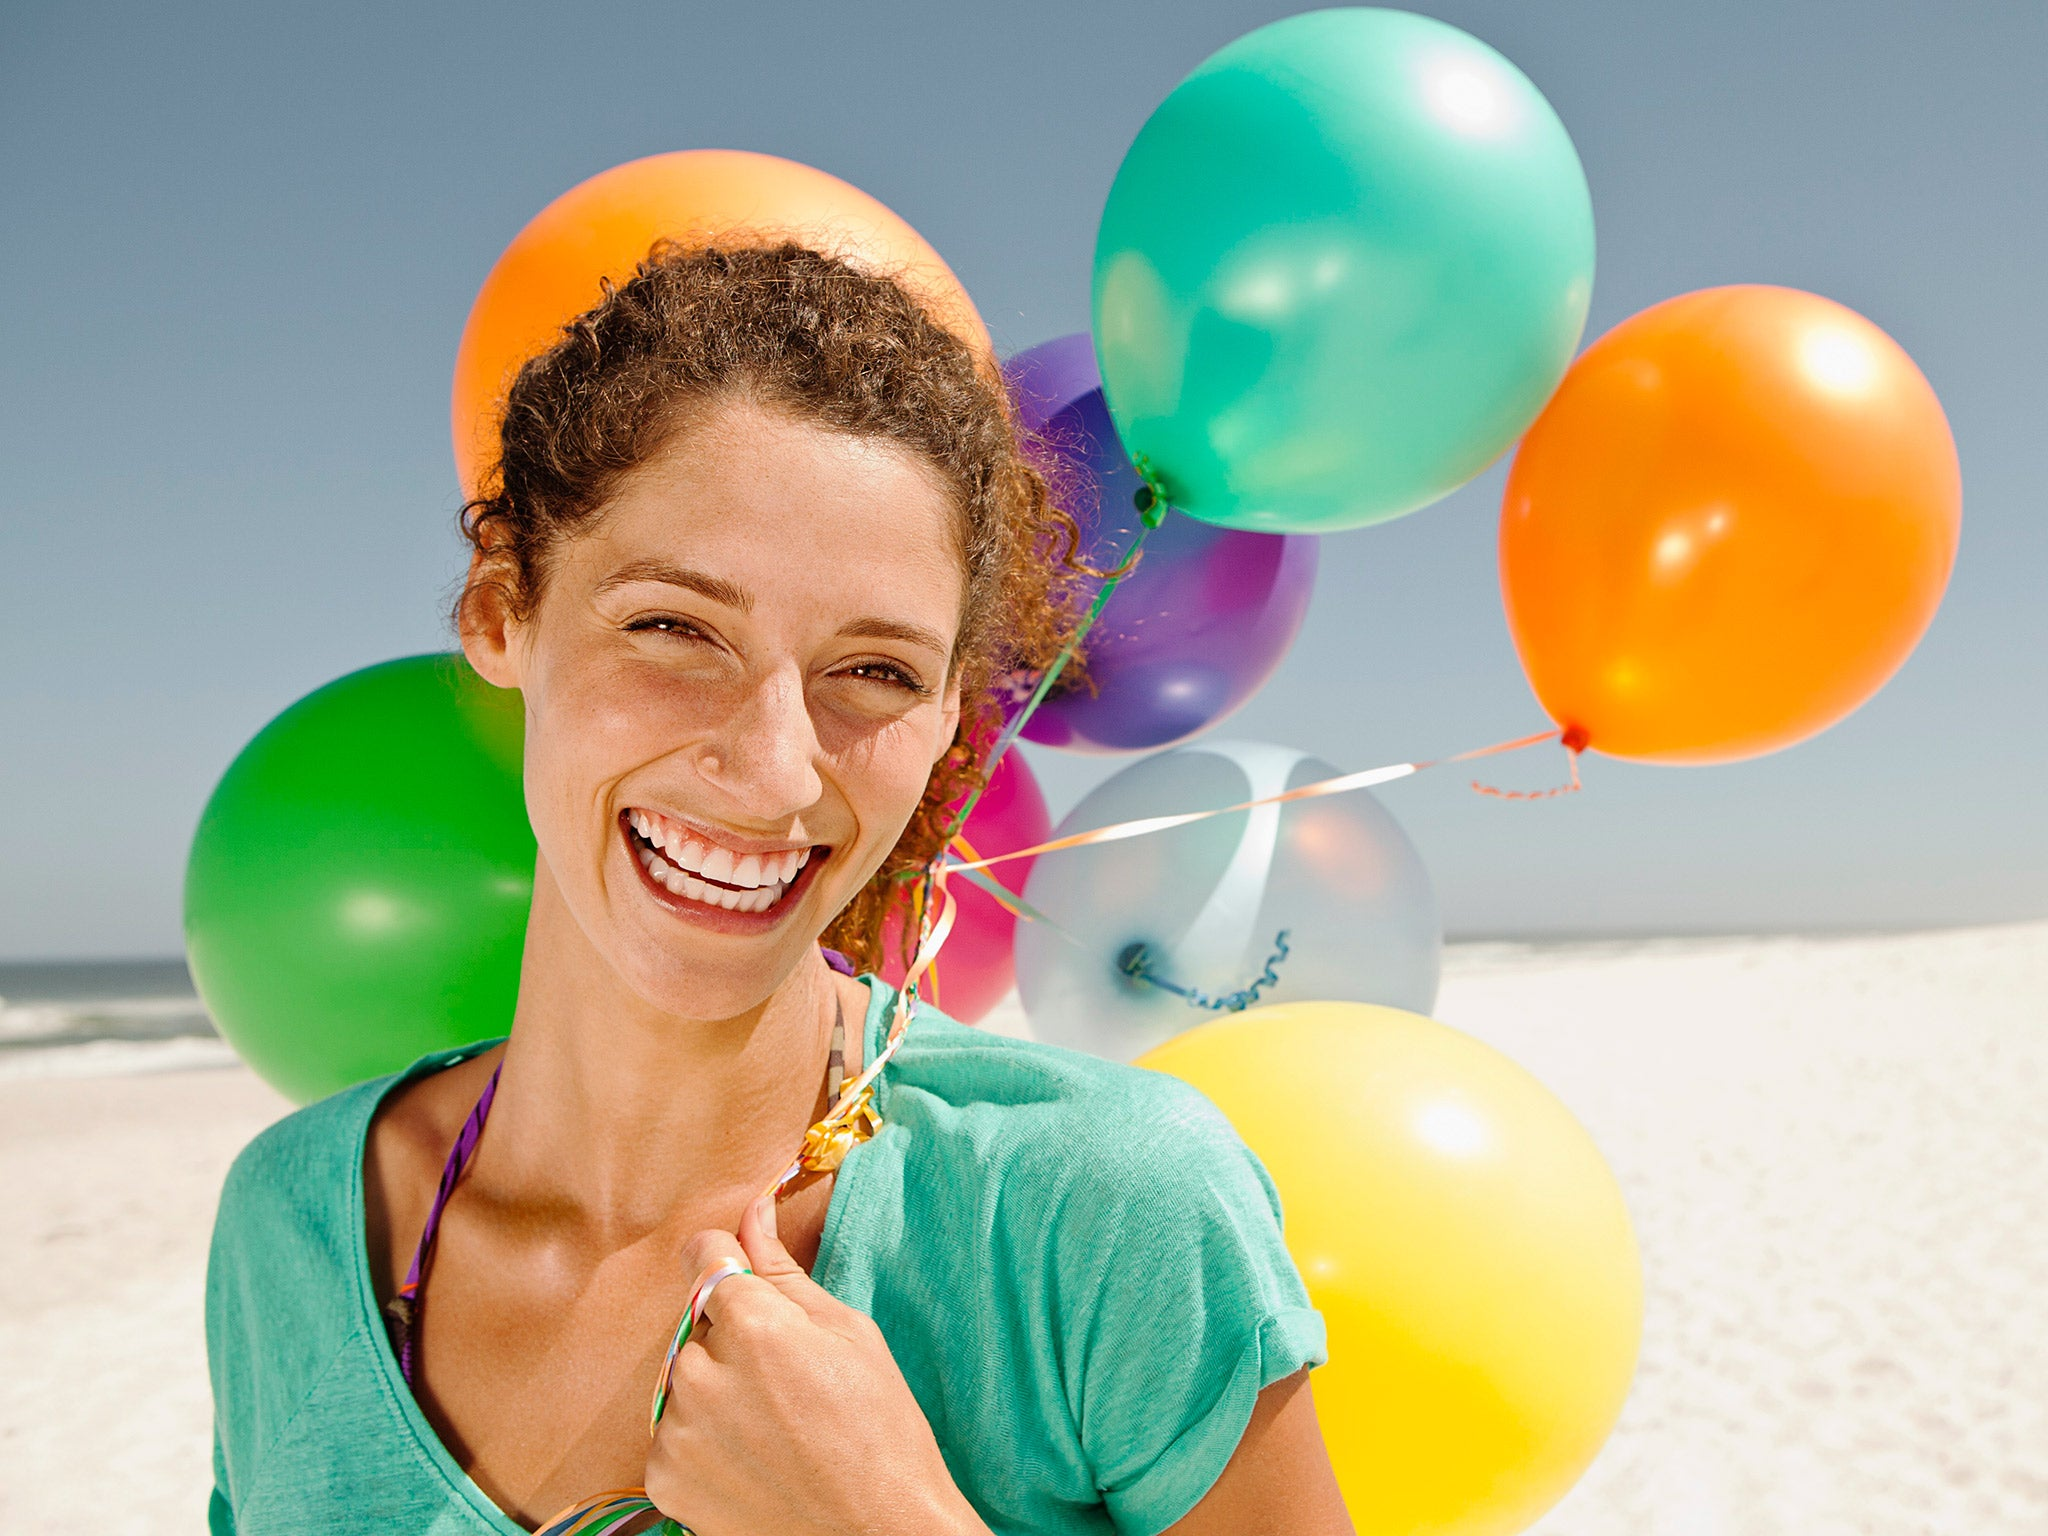 How to feel happier: the advice of a psychologist